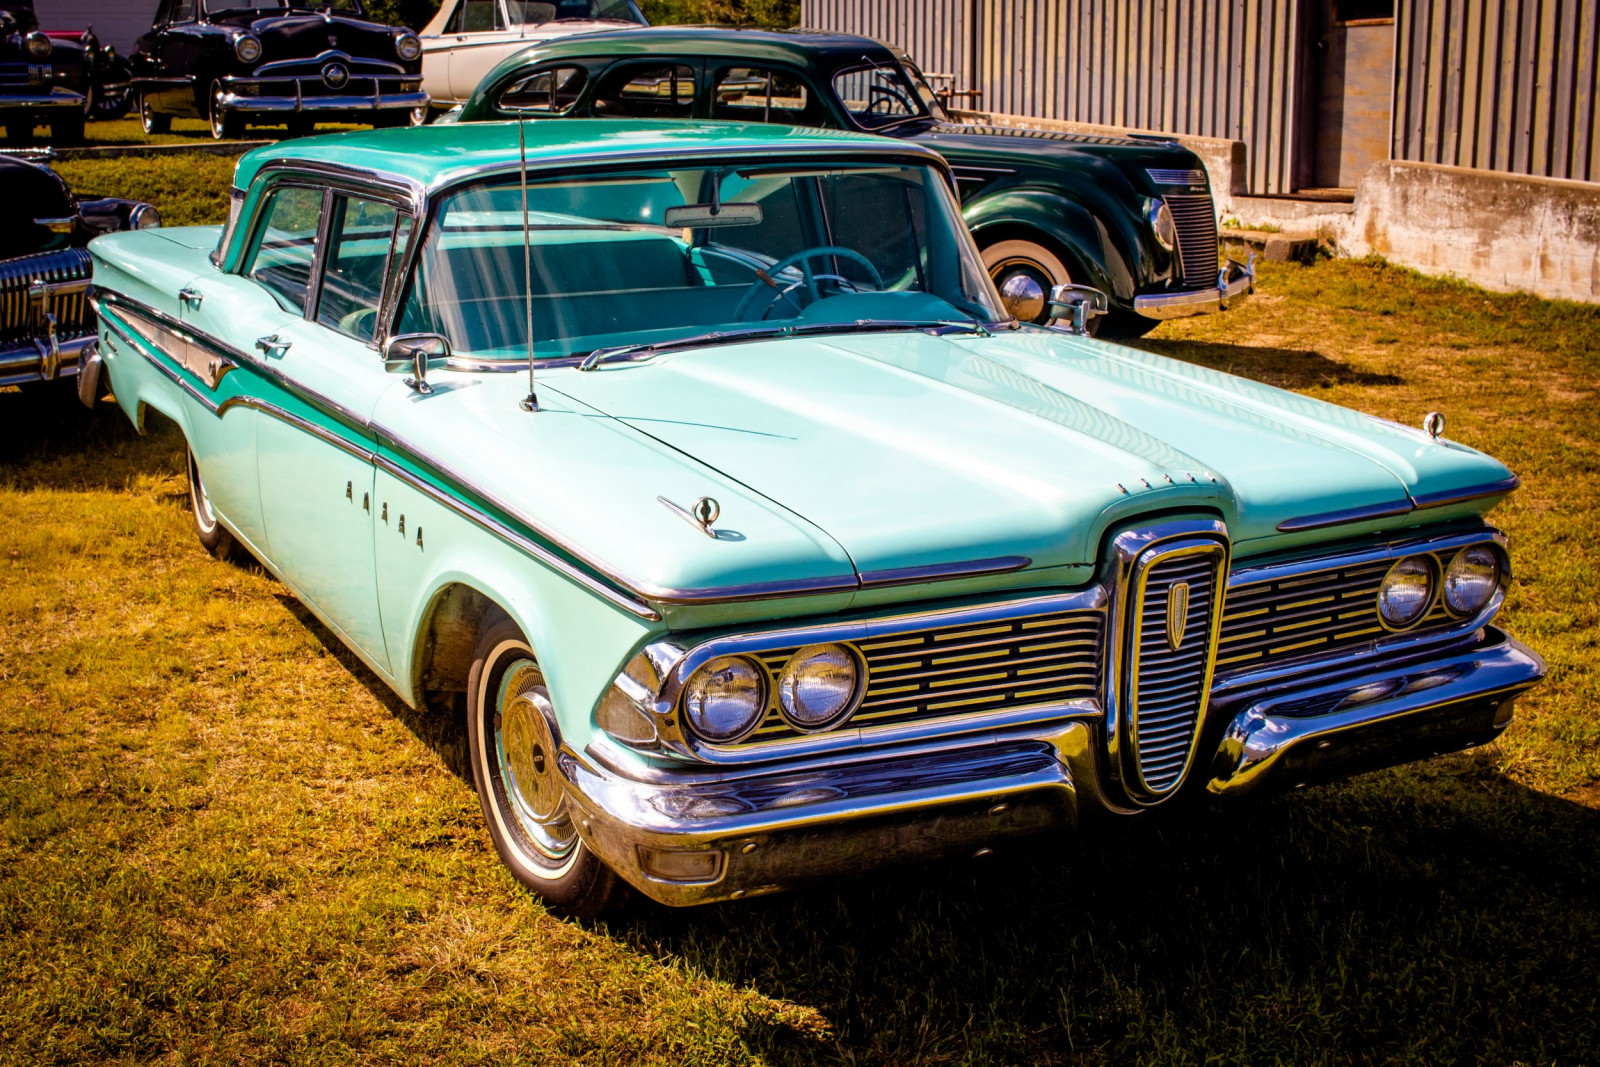 1959 Edsel Corsair 4dr Sedan - Image 3